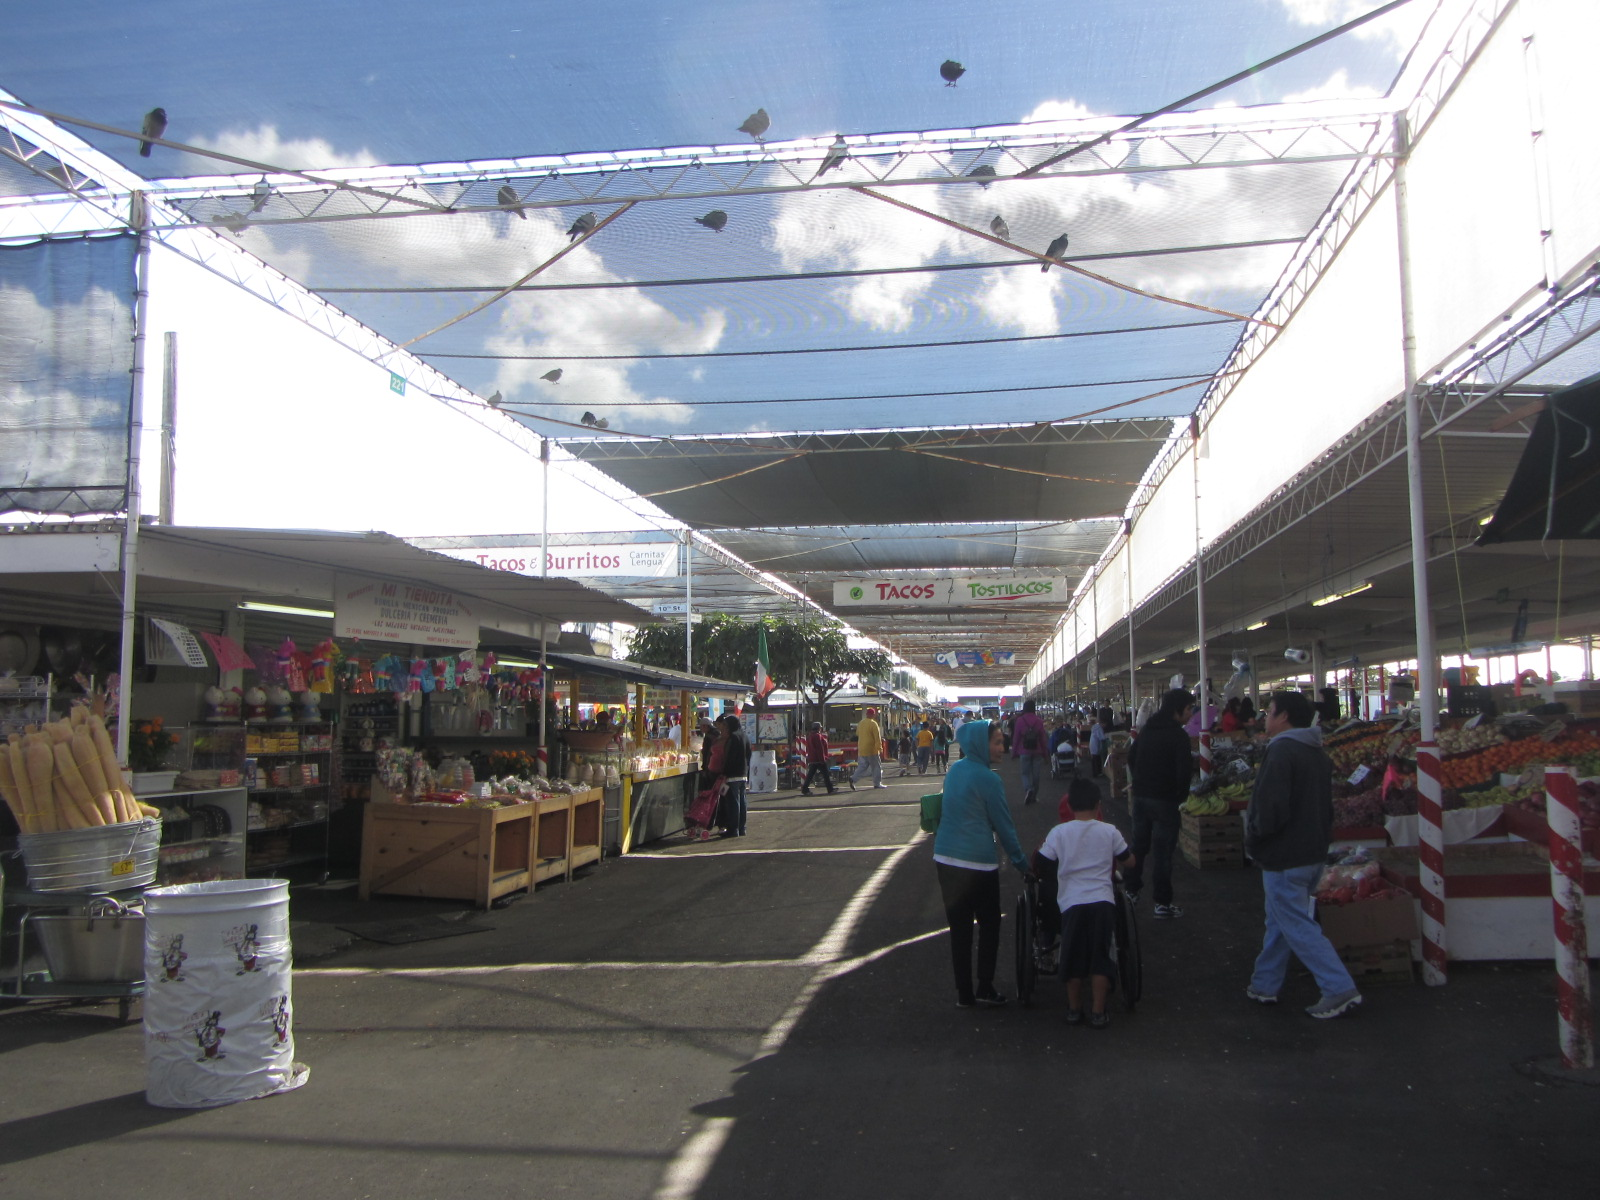 South Bay San Jose Flea Market